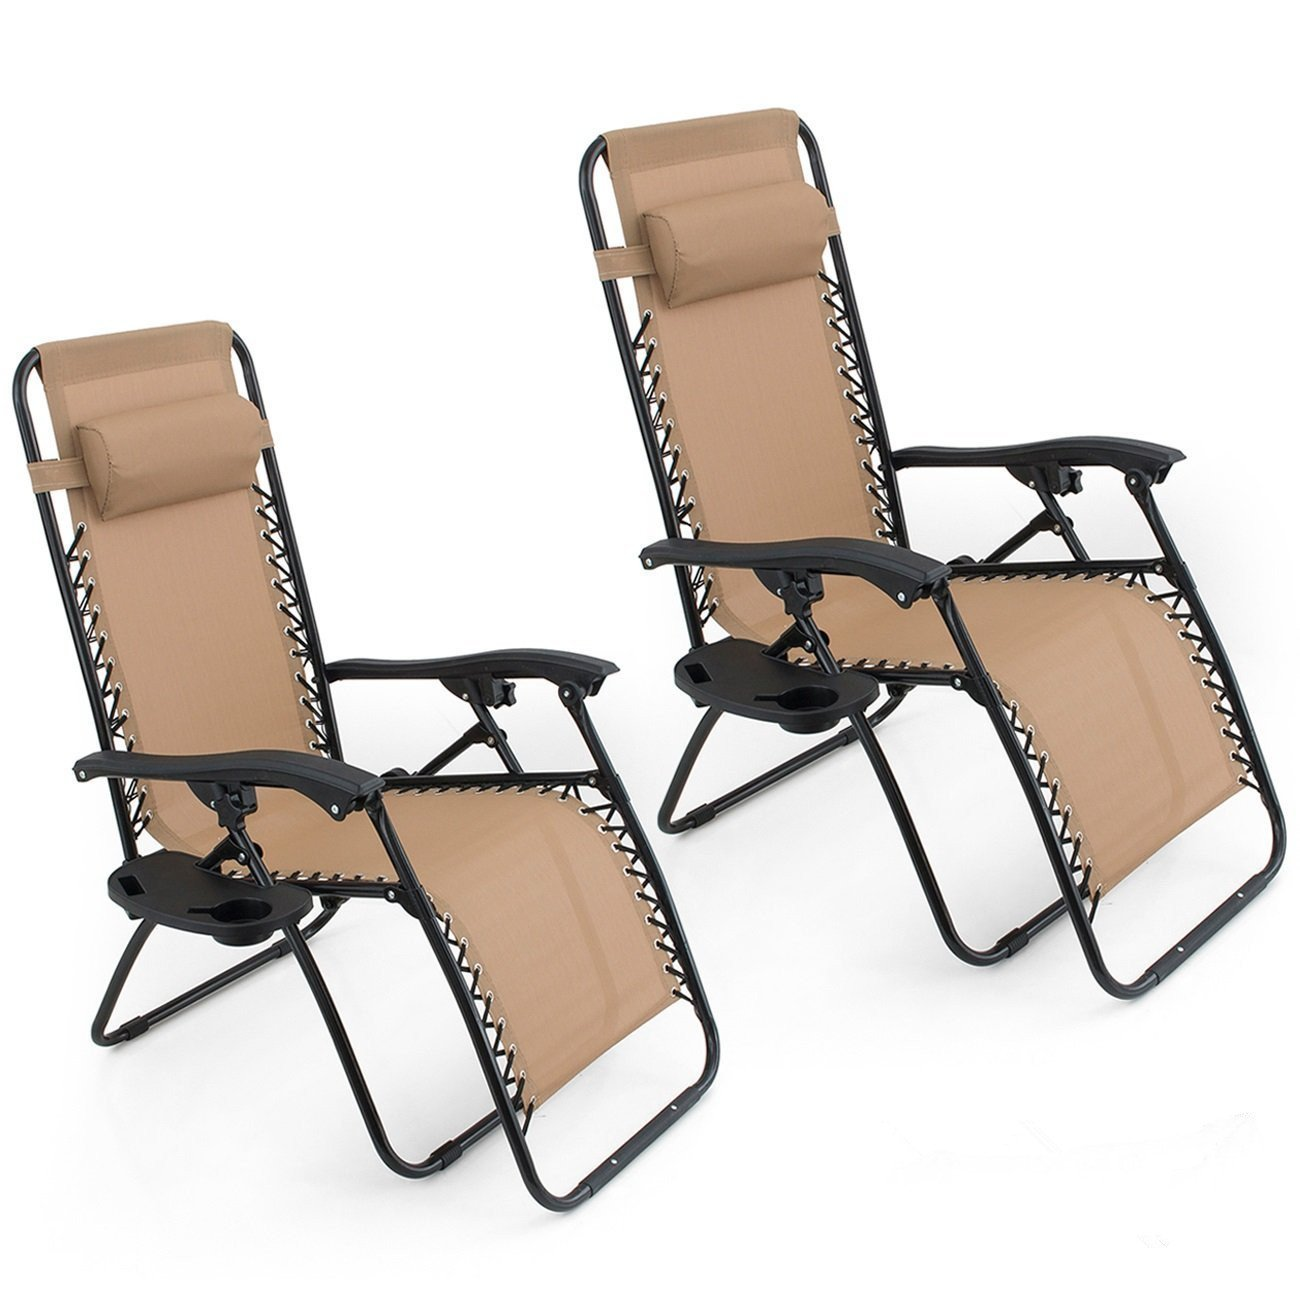 Amazon.com : Oshion 1 Pair Zero Gravity Chairs Black Lounge Patio Chairs  Outdoor Yard Beach New (Tan) : Garden & Outdoor - Amazon.com : Oshion 1 Pair Zero Gravity Chairs Black Lounge Patio